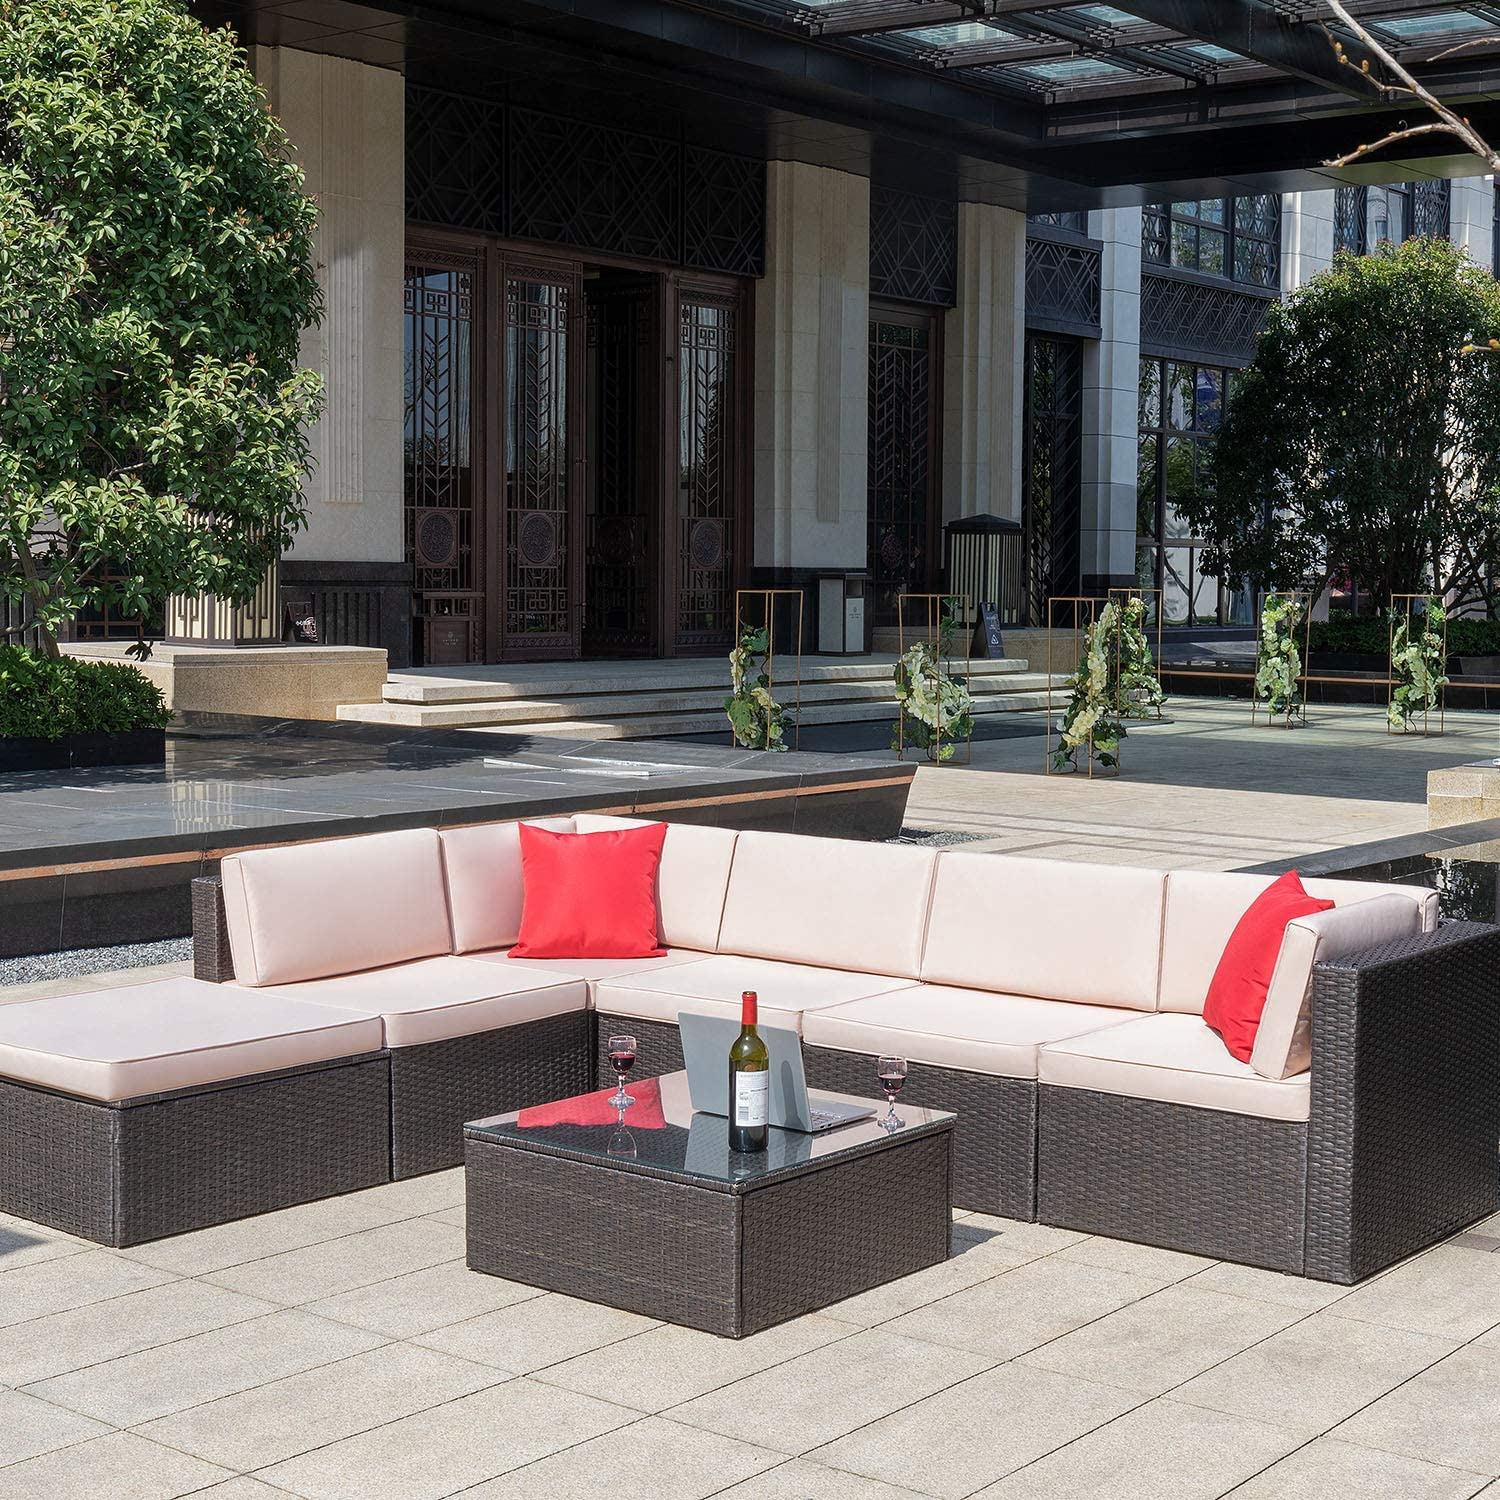 Homall 7 Pieces Outdoor Patio Furniture Sofa Set, All Weather PE Rattan Wicker Sectional Sets Modern Modular Couch Outside Conversation Set with Thick Cushions and Glass Coffee Table Brown